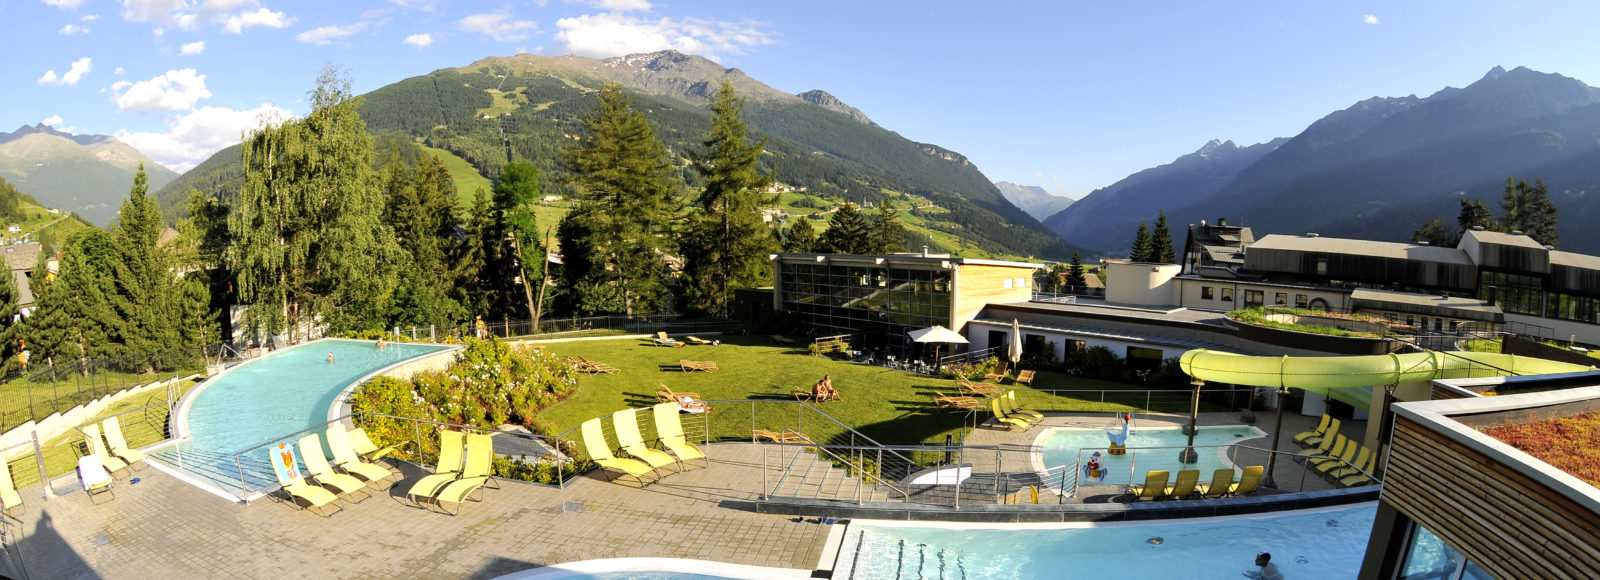 Bormio Thermal Waters - Pirovano